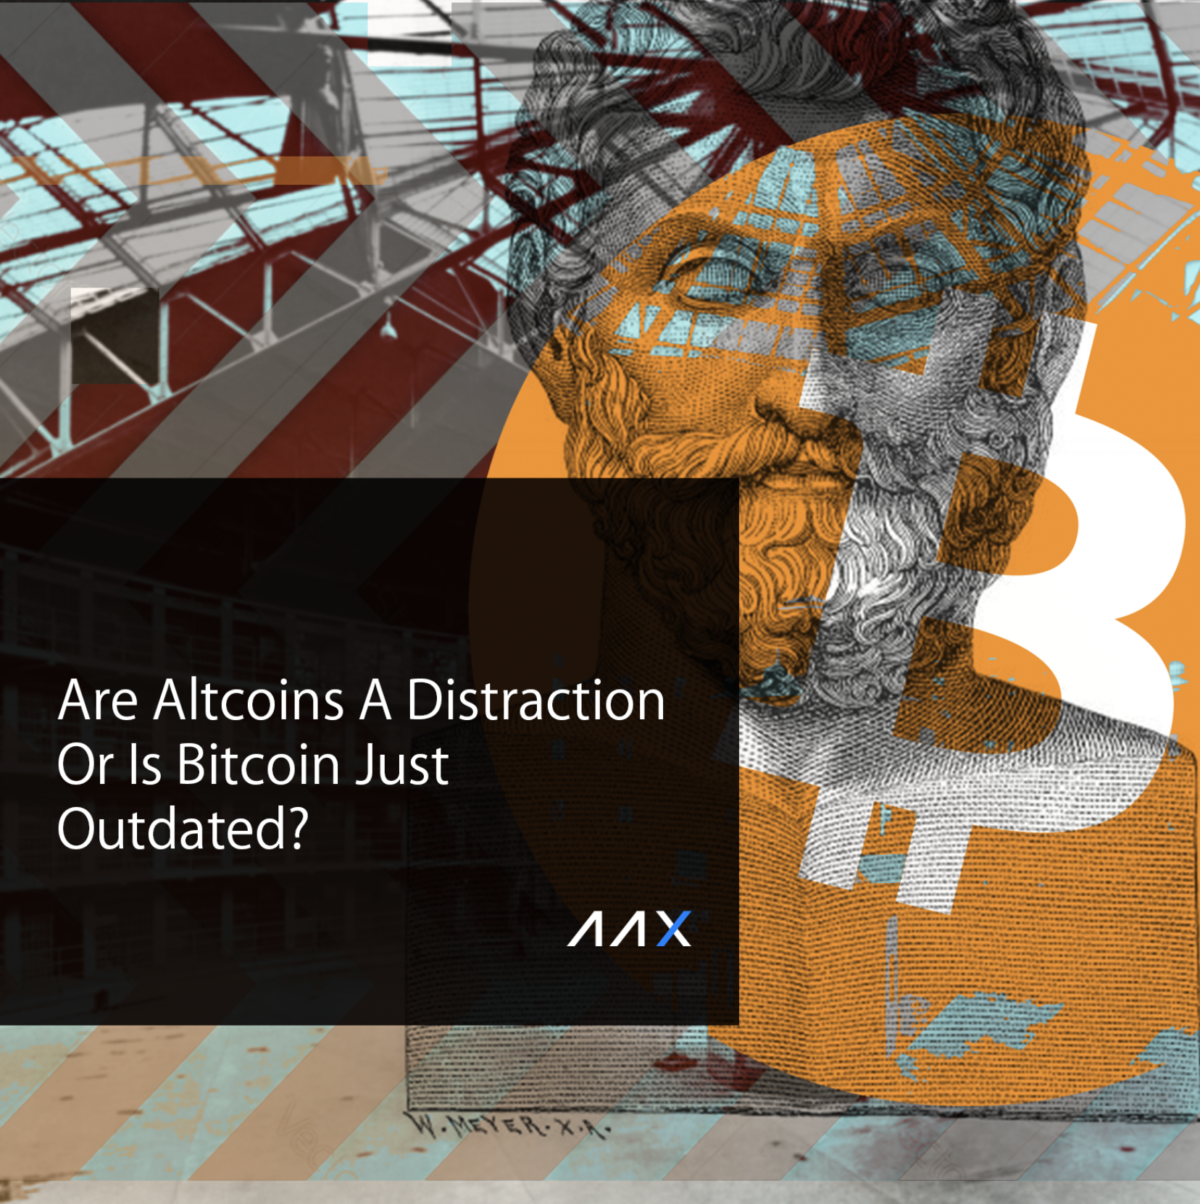 Are Altcoins A Distraction Or Is Bitcoin Just Outdated?